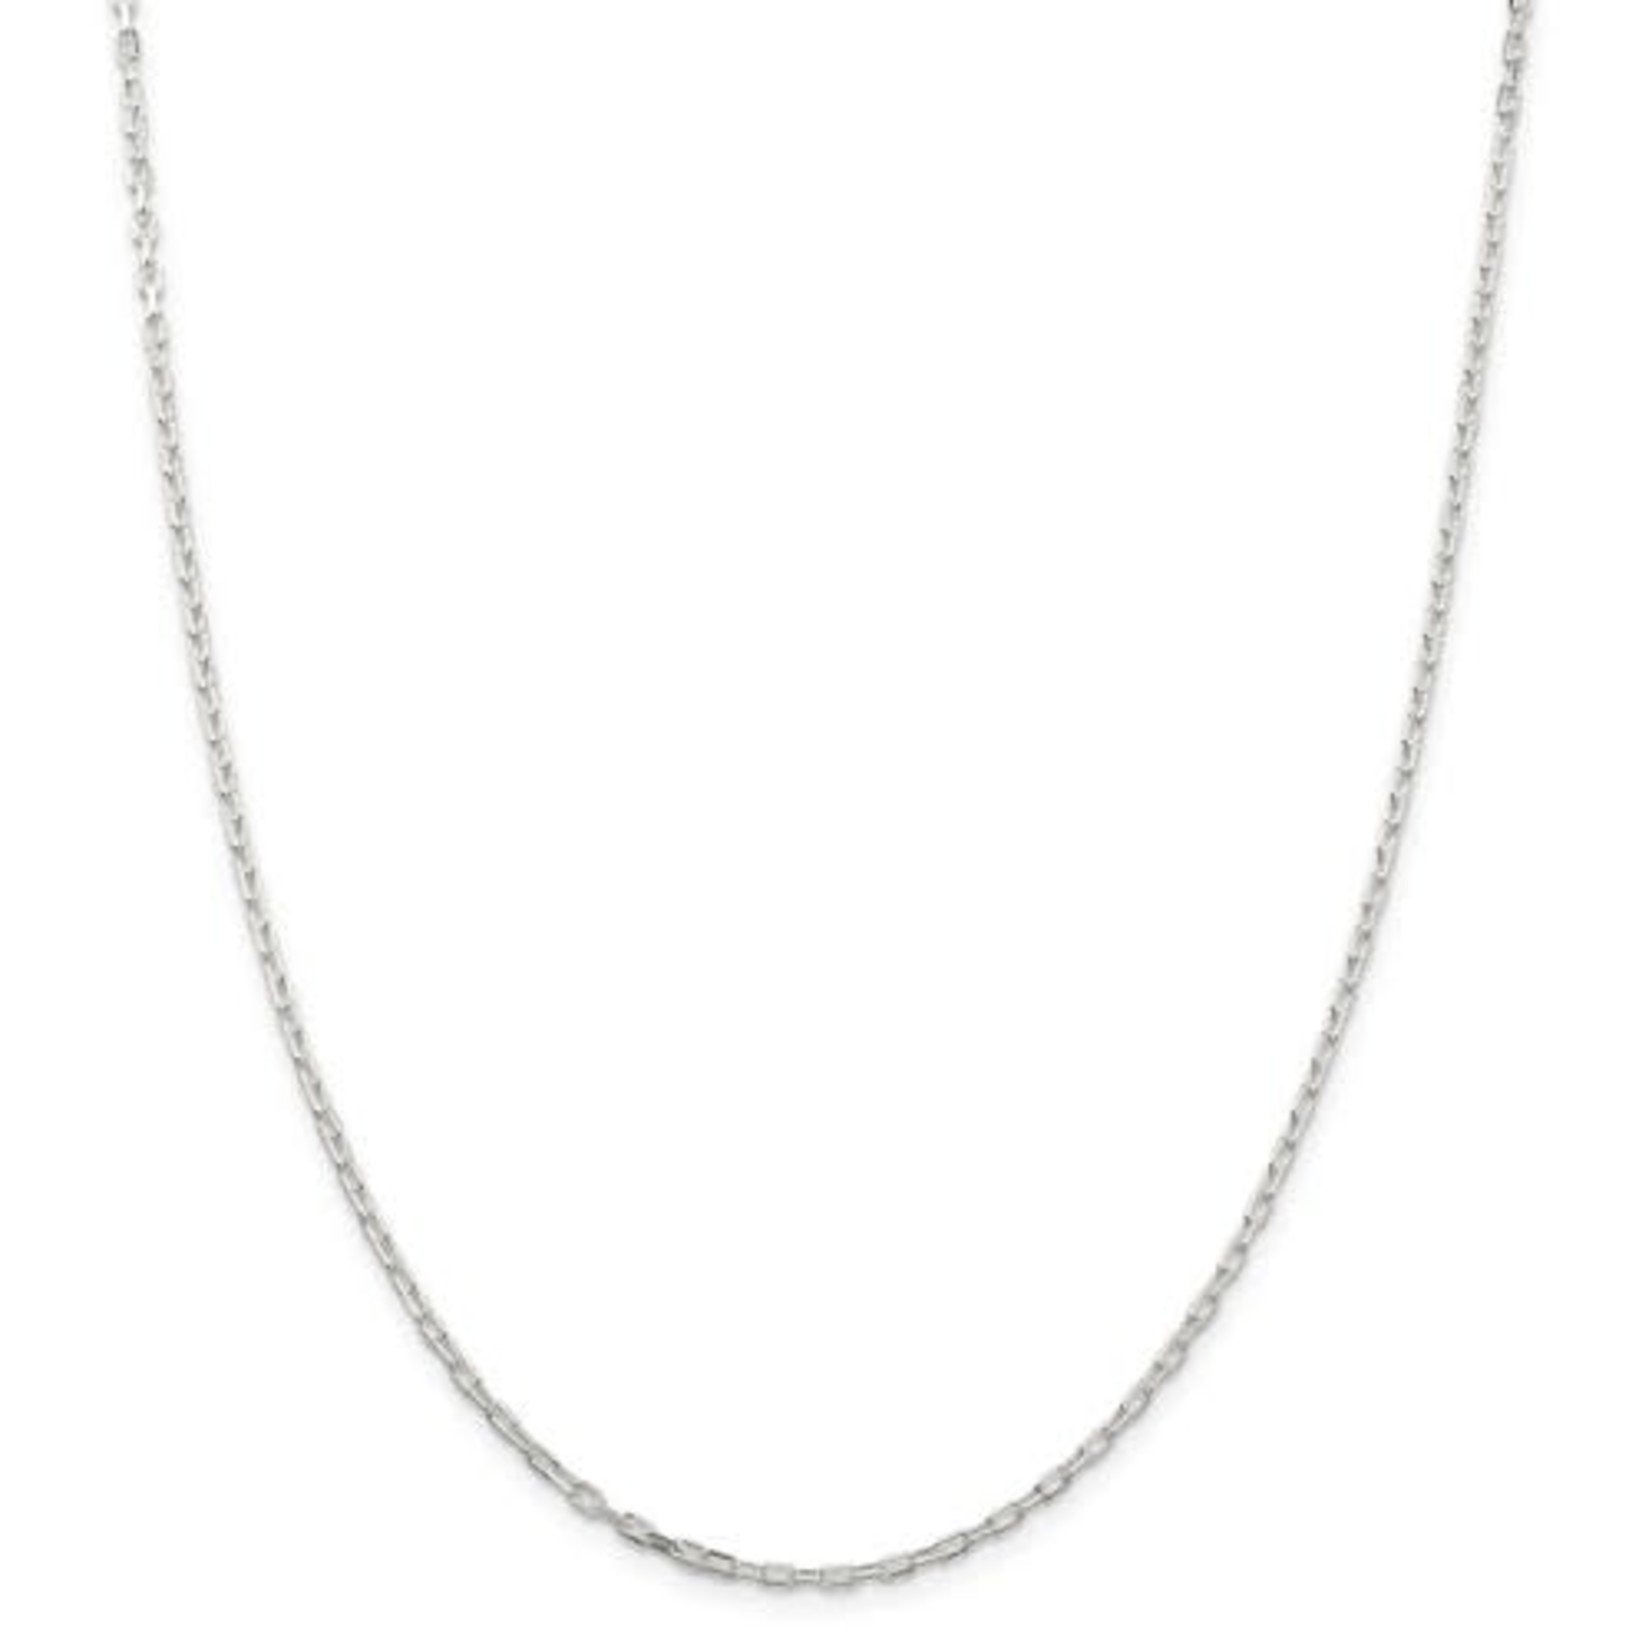 This Is Life Fancy Diamond-Cut  Cable Chain - Sterling Silver  18'